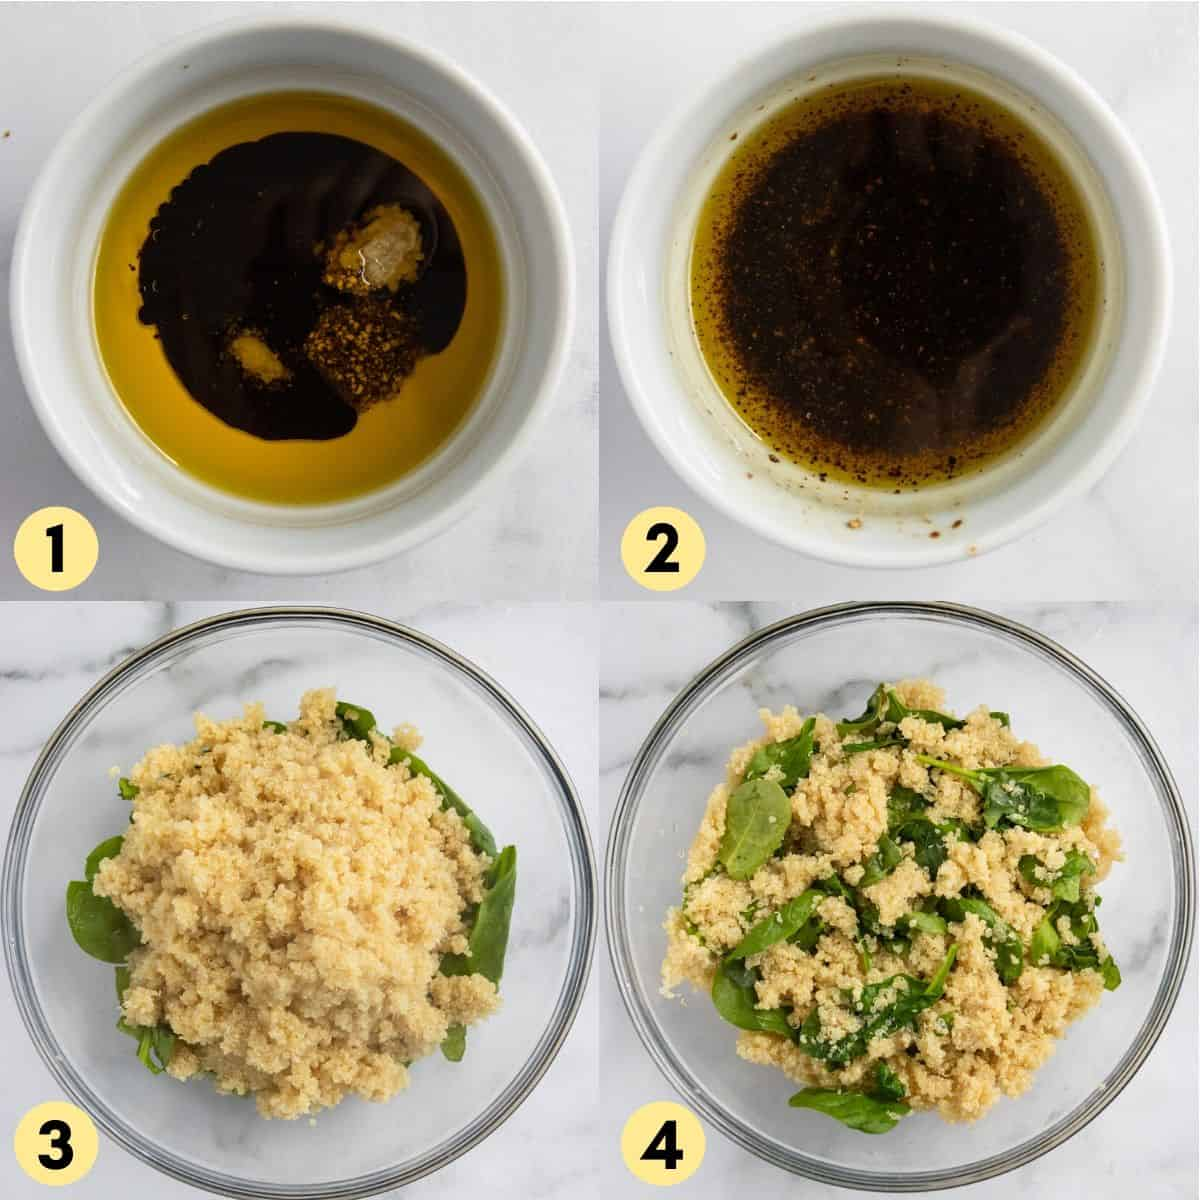 Dressing ingredients in small bowl along with quinoa and spinach in mixing bowl.